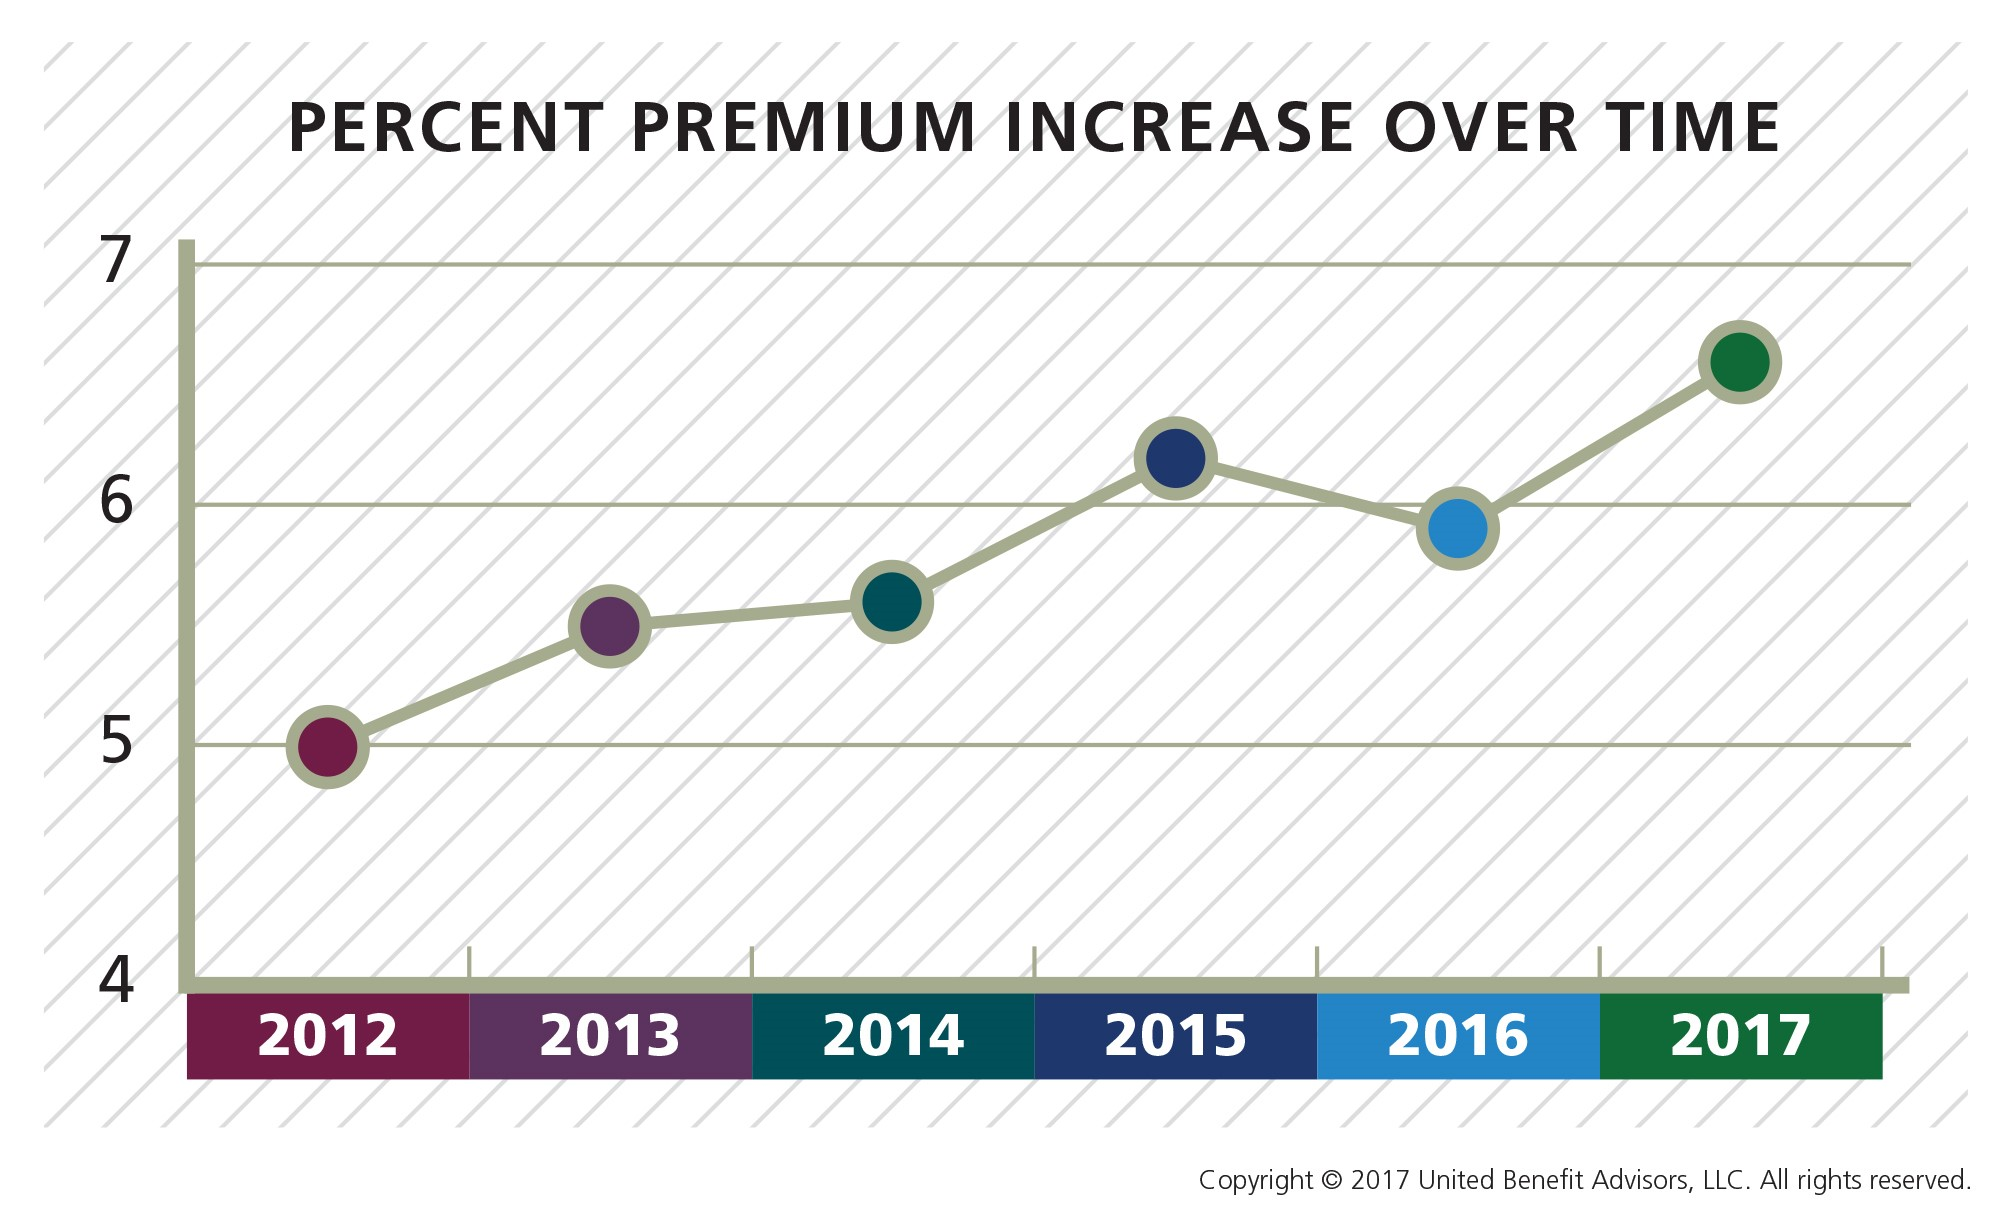 Percent Premium Increase Over Time